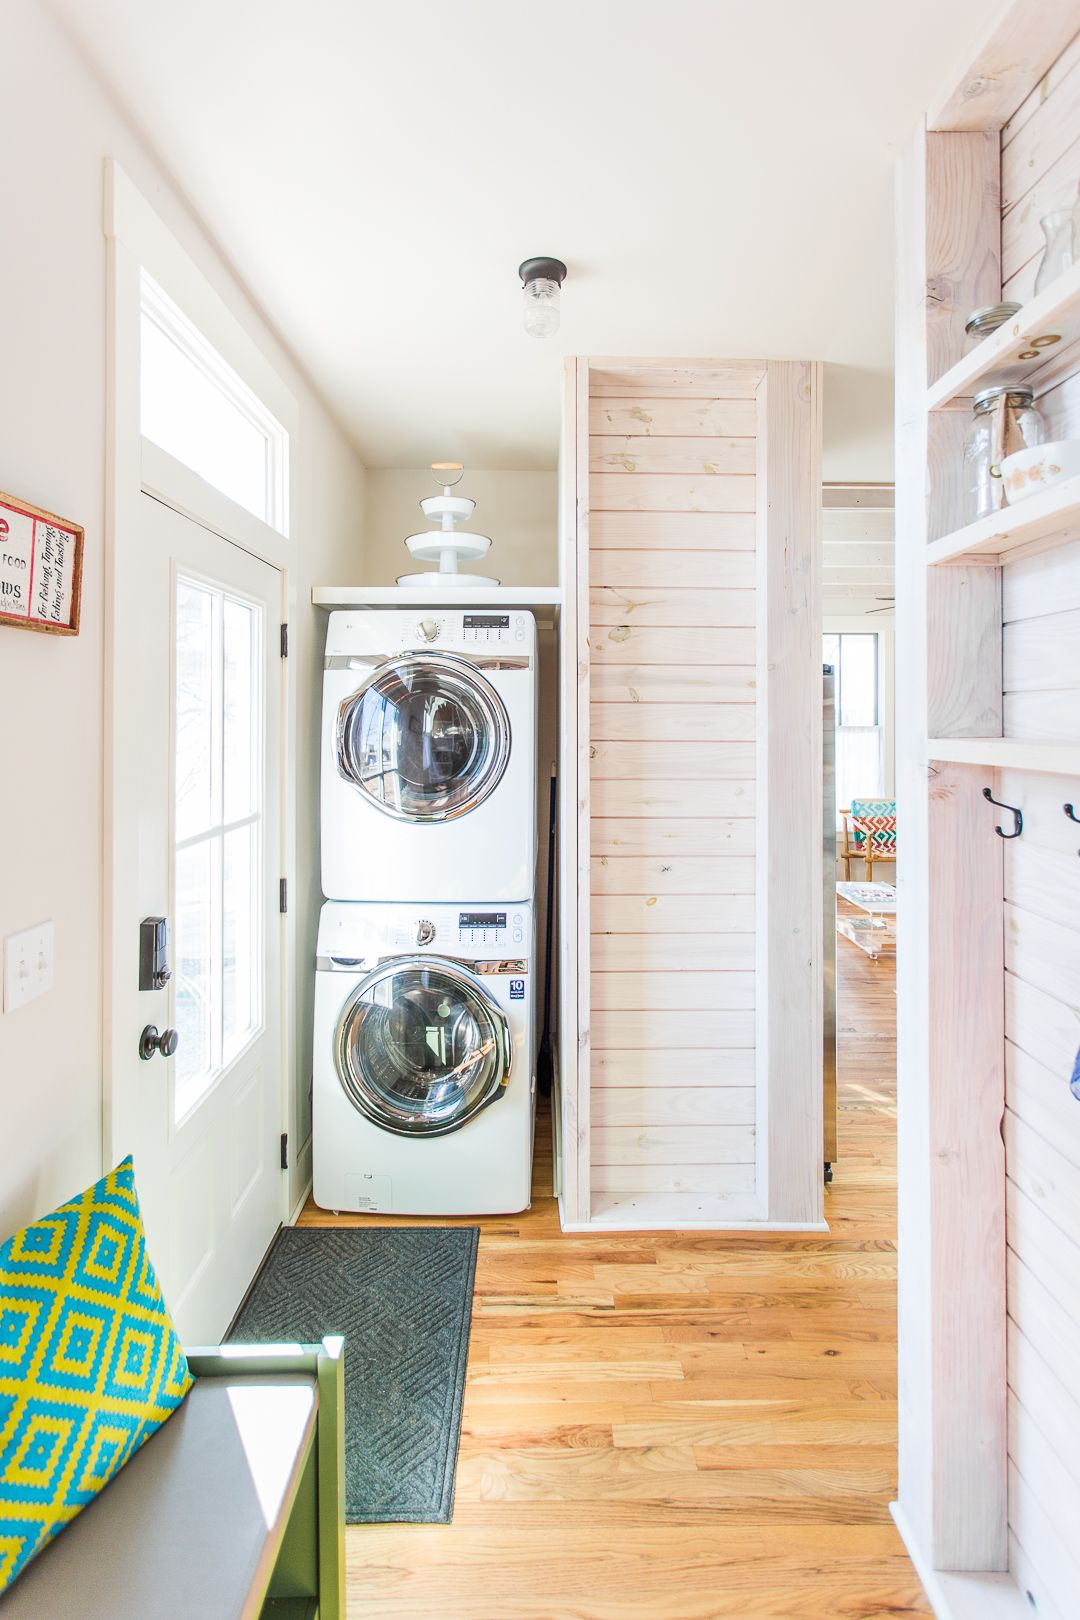 Home Tour: Boho Vintage Lake Cottage | Bunk rooms, Small space ...